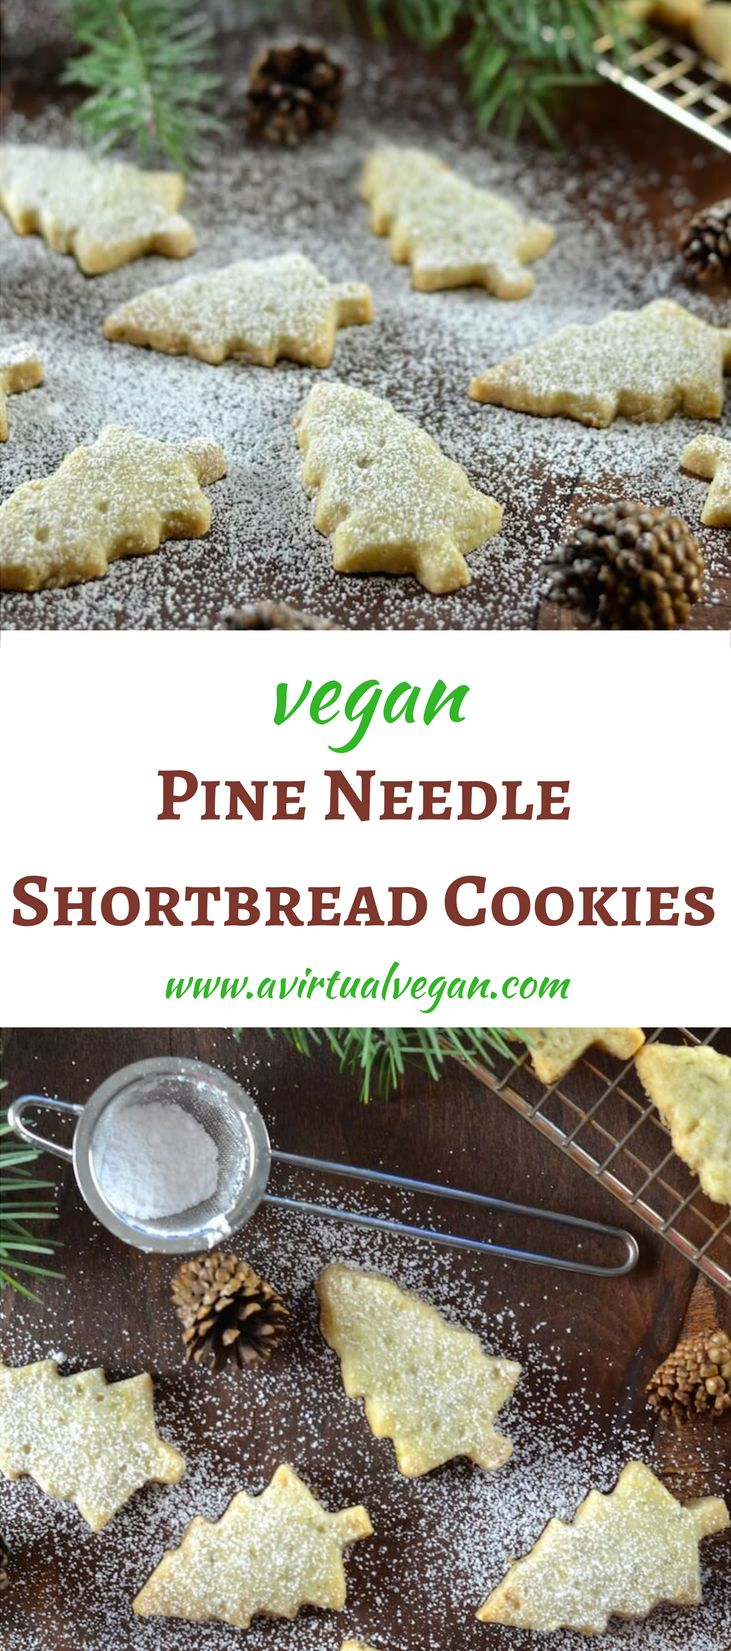 Melt in your mouth Pine Needle Shortbread Cookies. A twist on an old favourite with just a hint of piney, citrusy flavour. Delicate, delicious & sure to impress! via @avirtualvegan